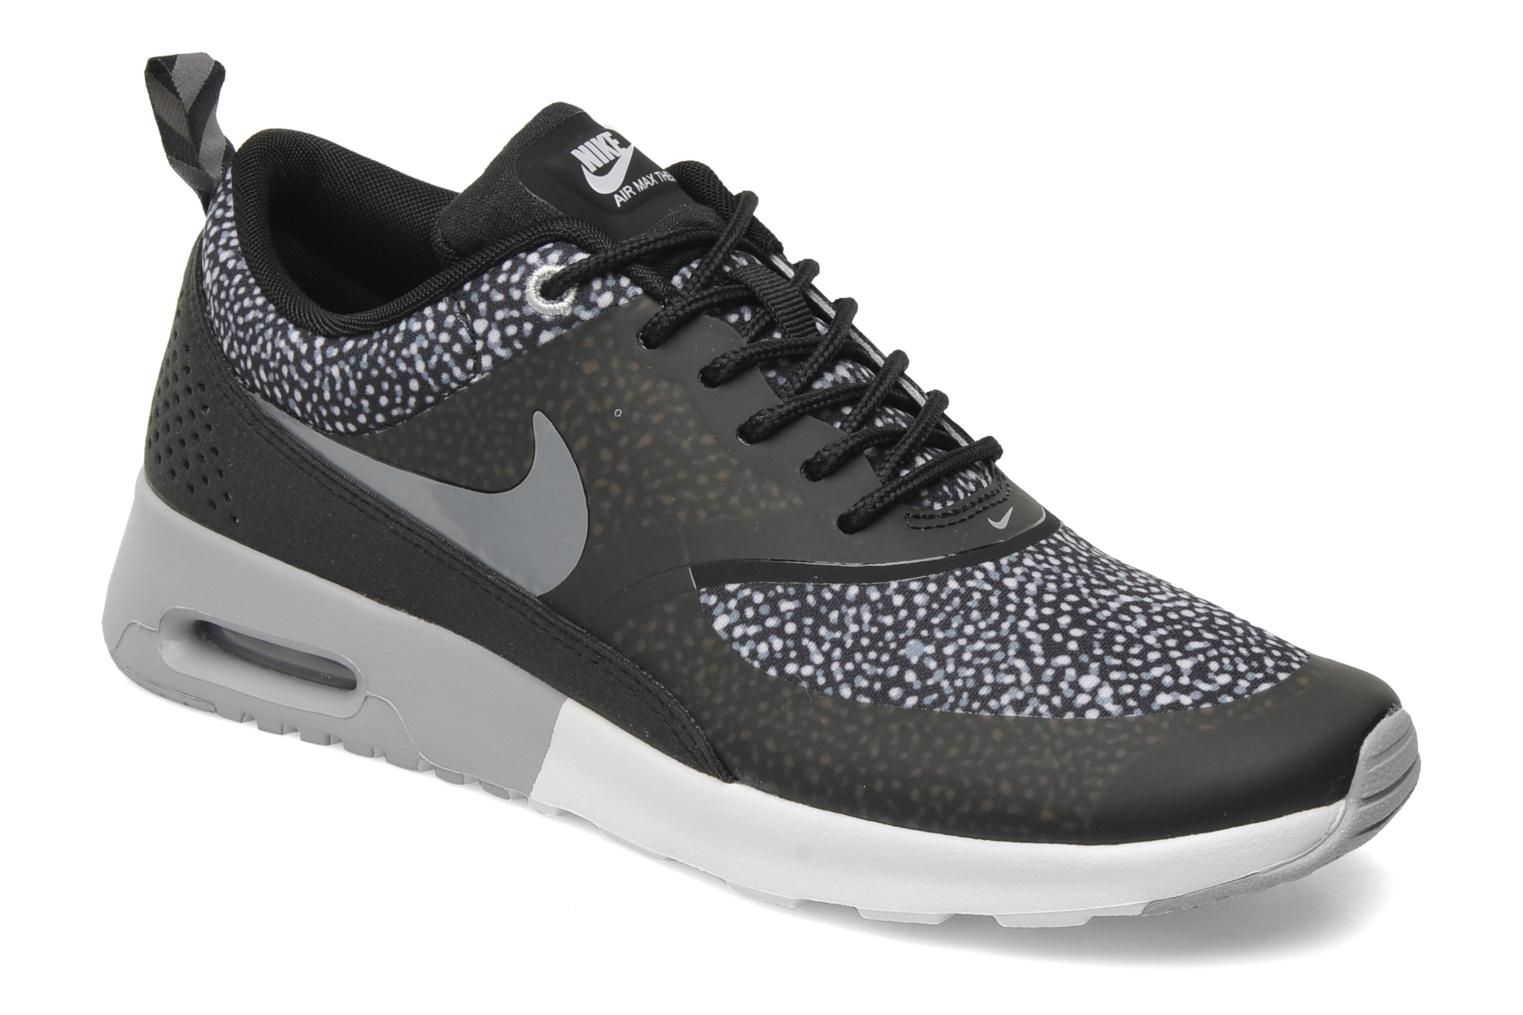 super popular c37f4 d3b91 Wmns Nike Air Max Thea Print by Nike (Black)   Sarenza UK   Your Trainers Wmns  Nike Air Max Thea Print Nike delivered for Free